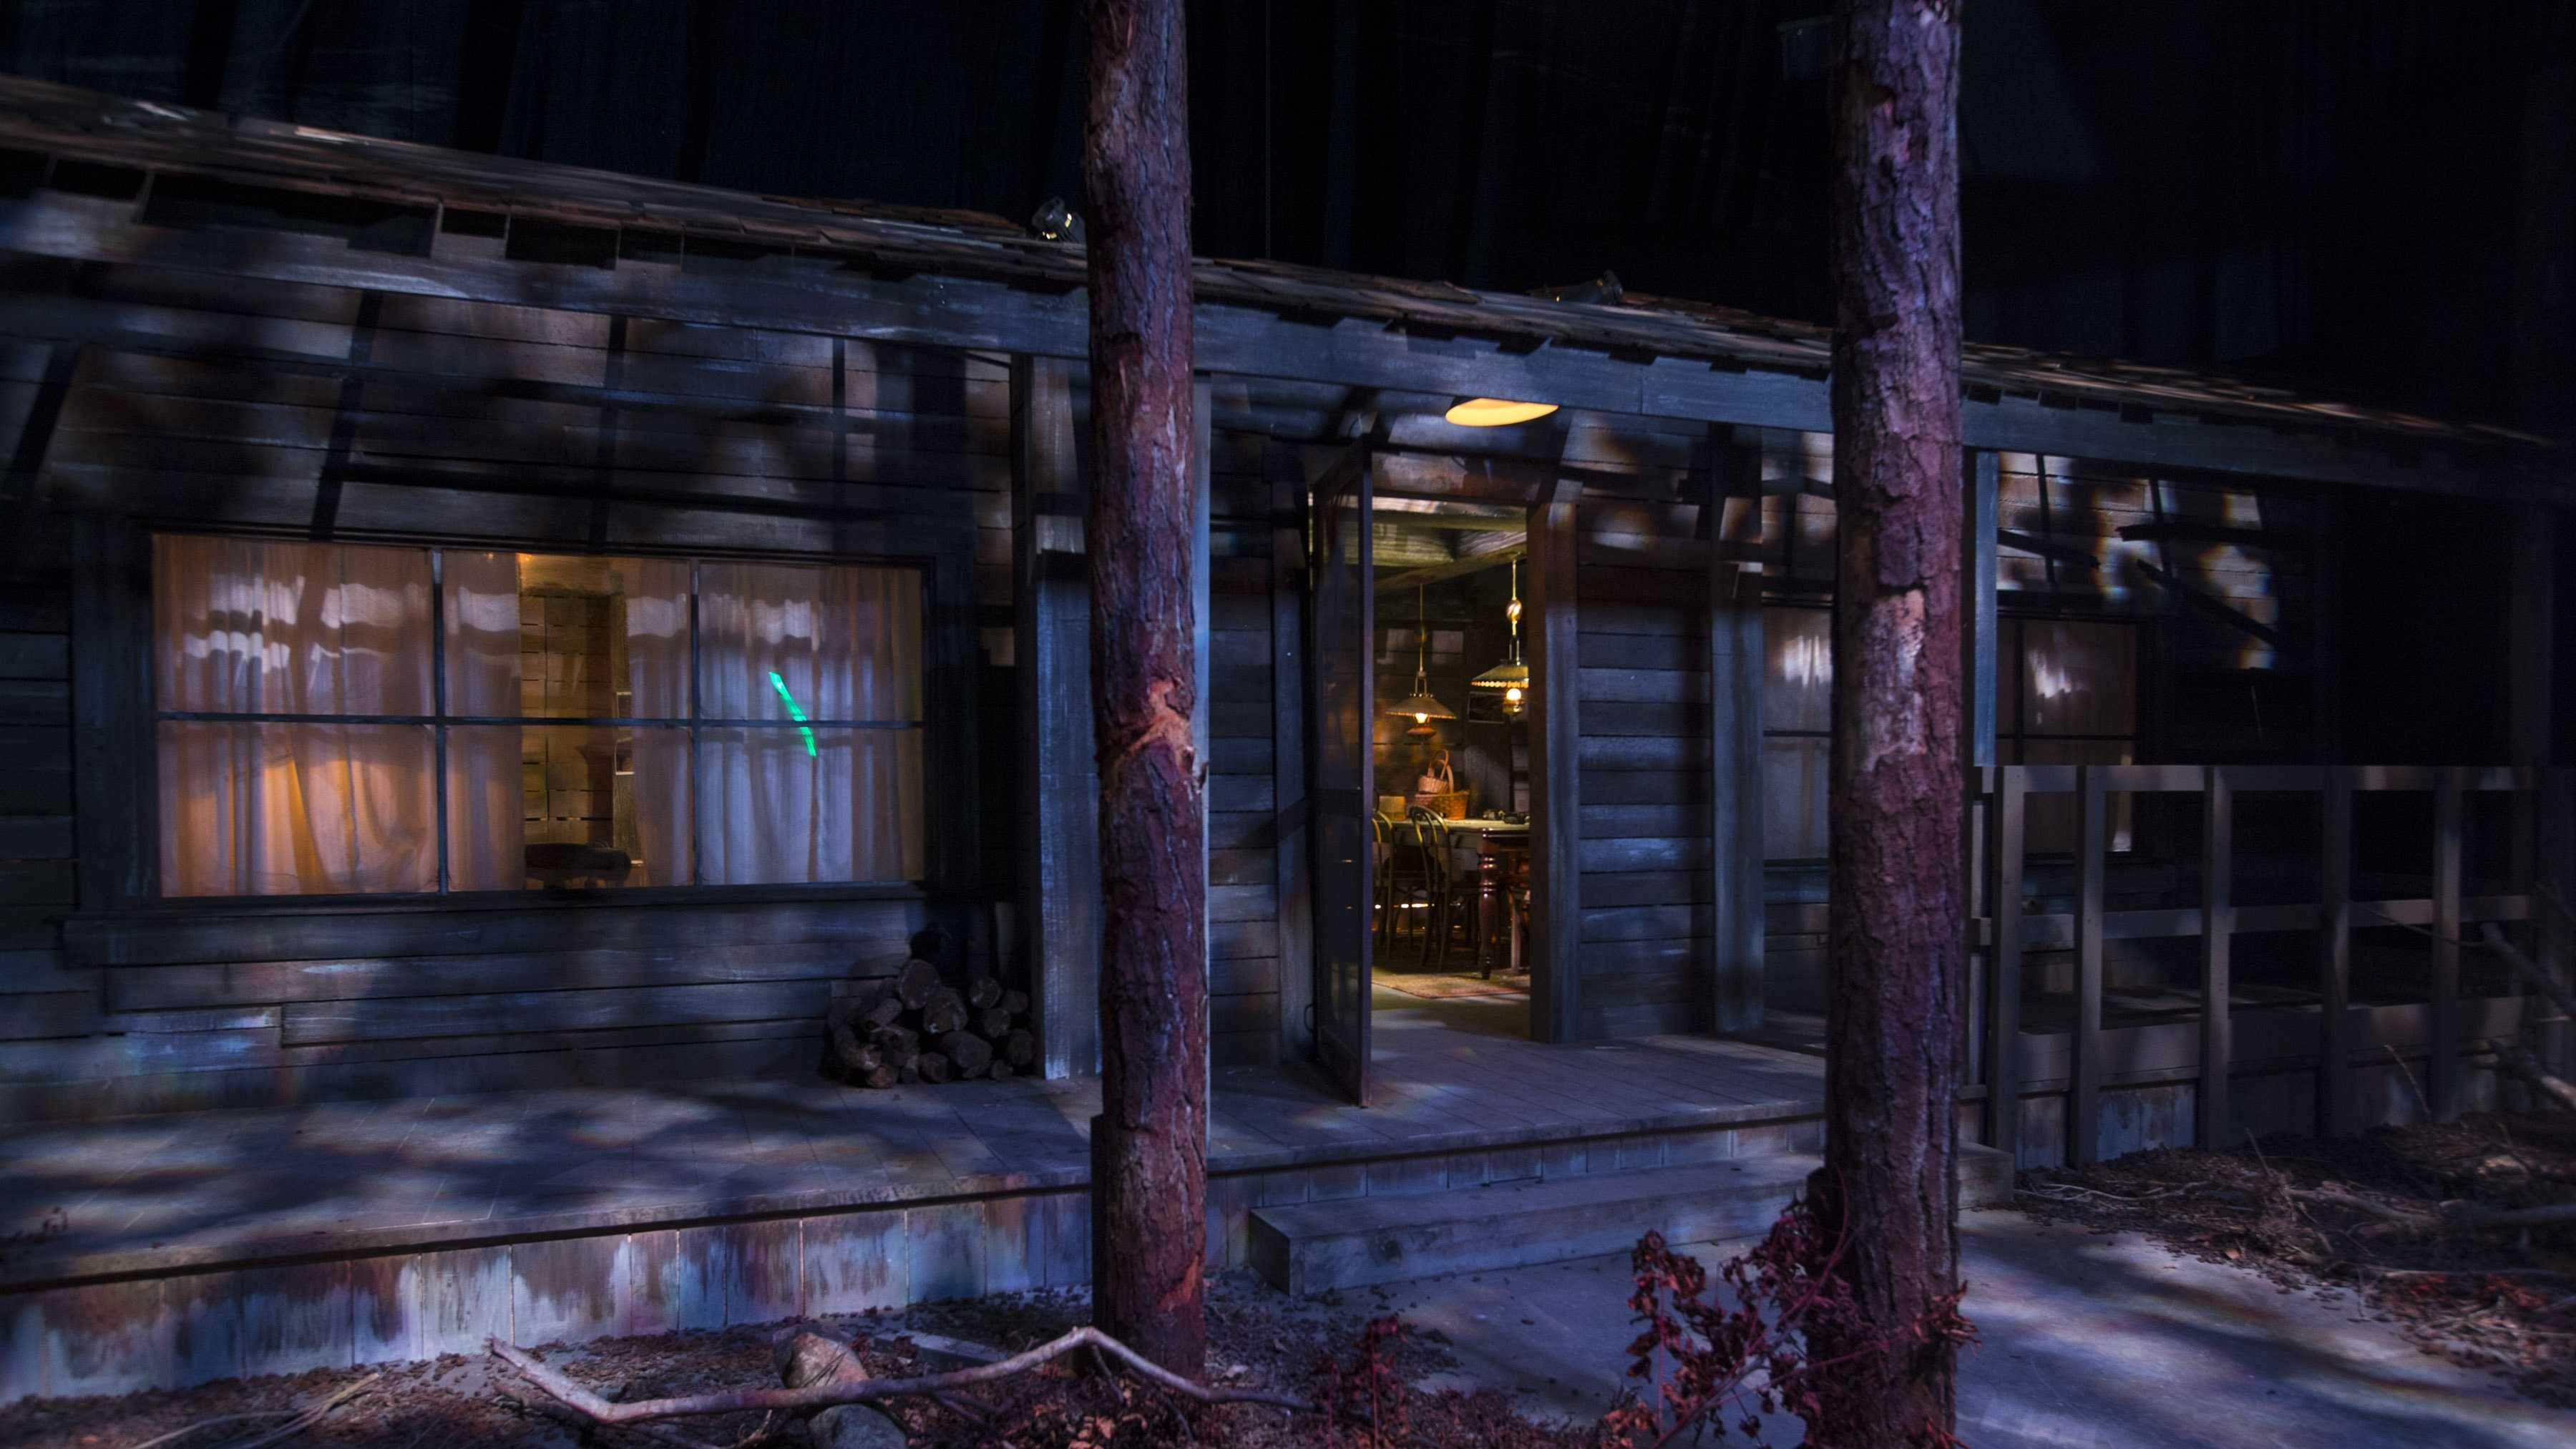 08_The Cabin in the Woods.JPG